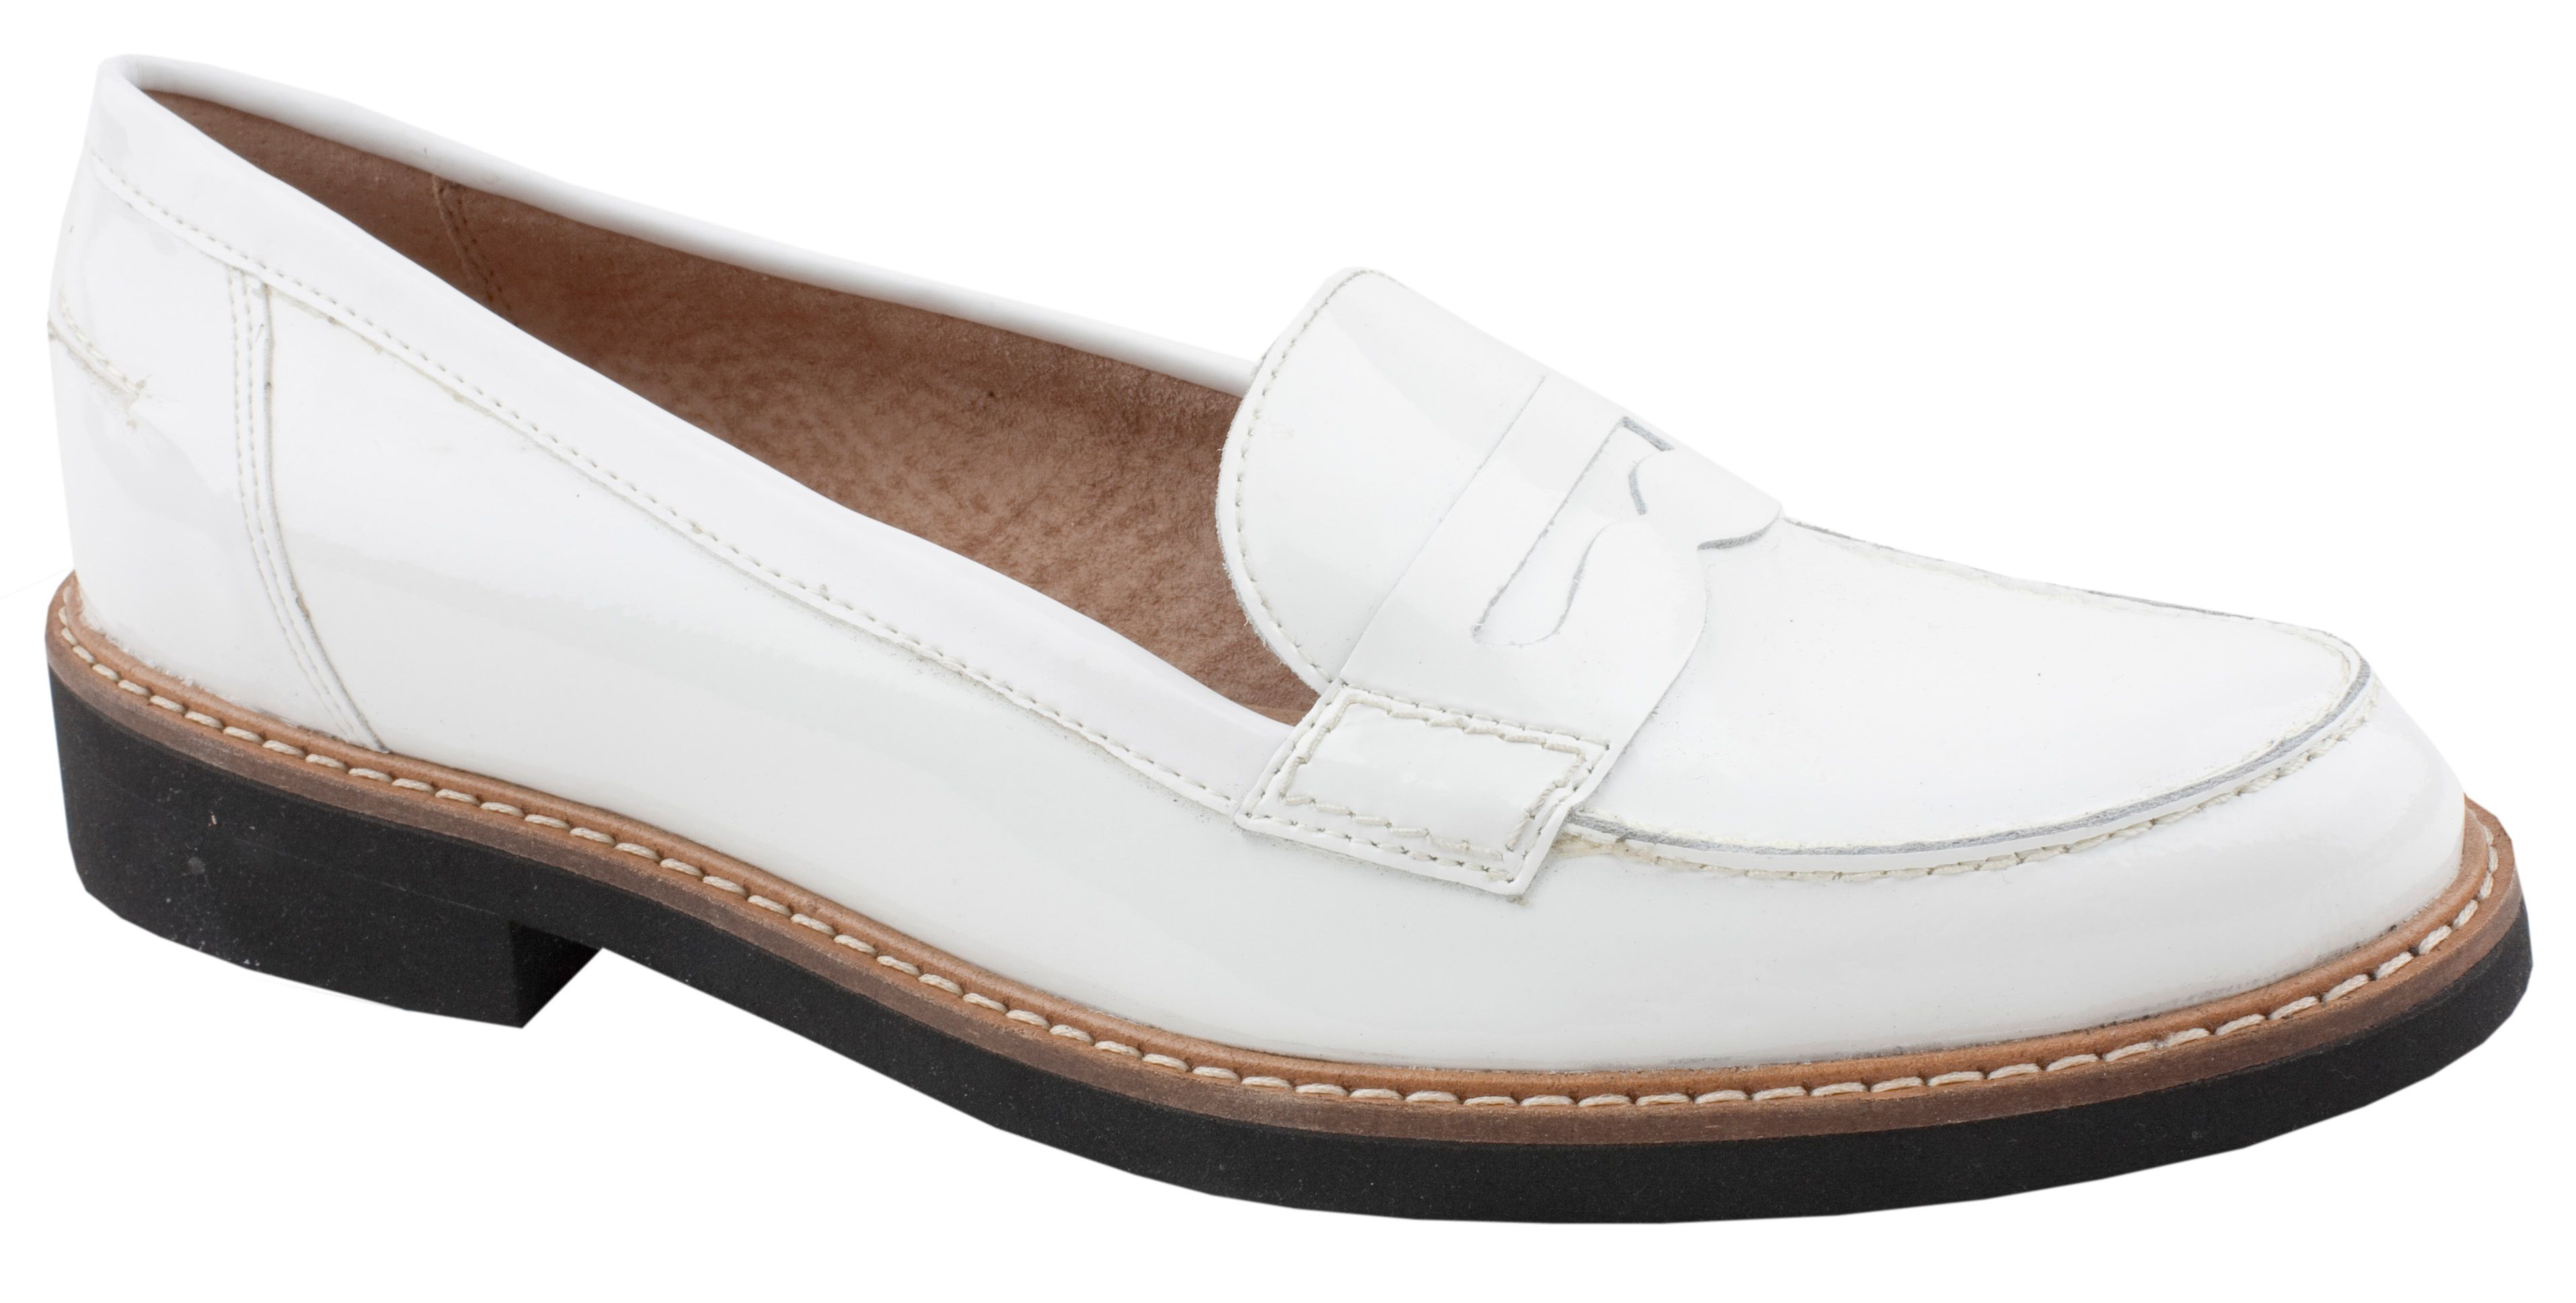 Gandy loafer shoes